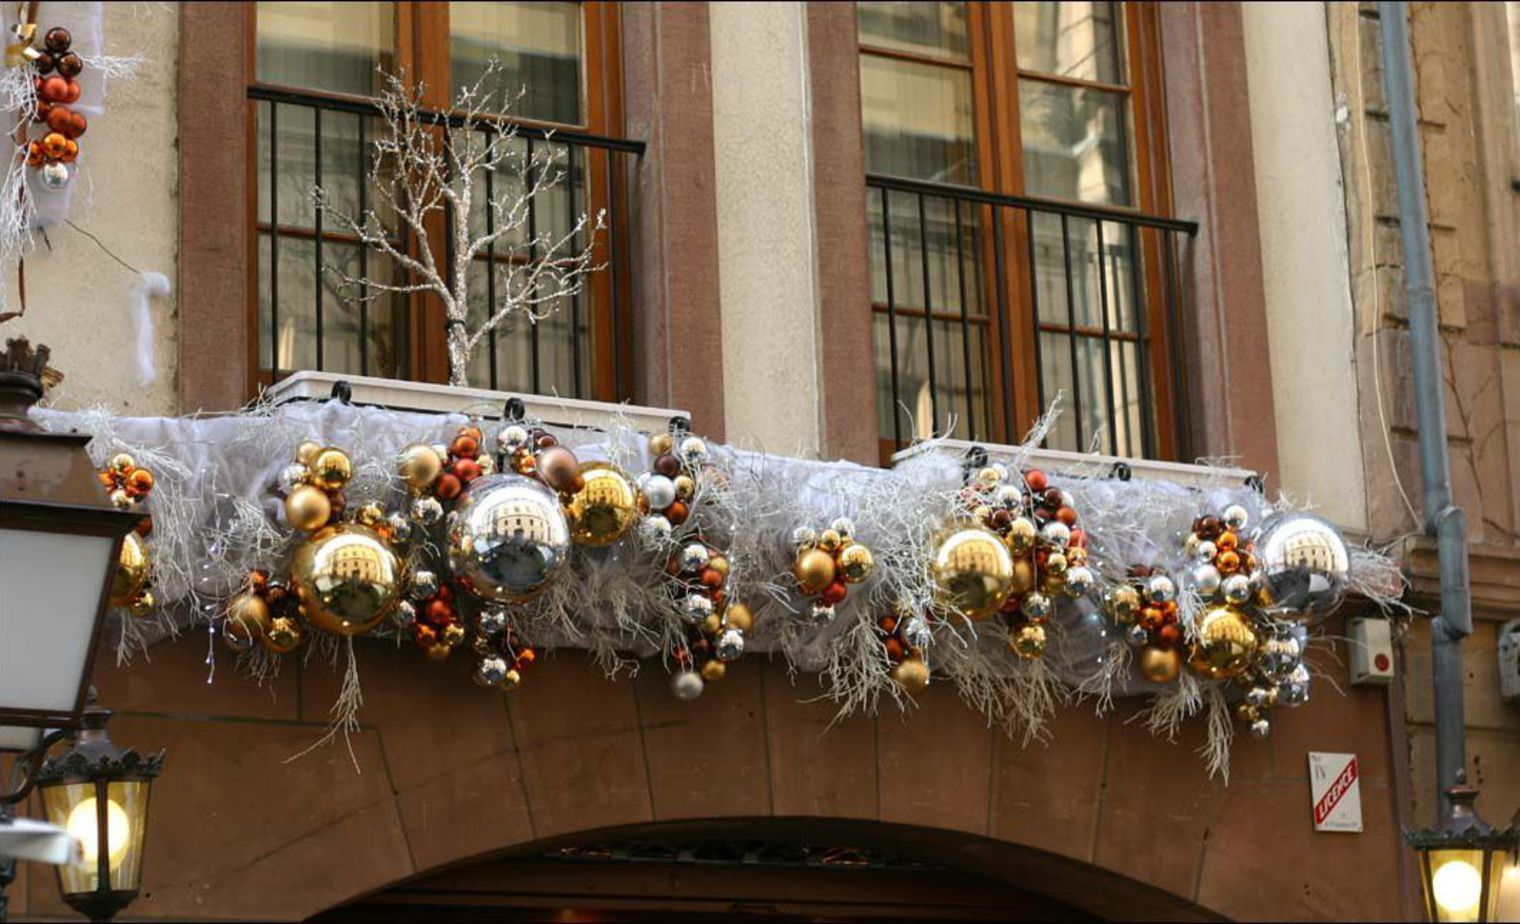 D coration noel exterieur balcon exemples d 39 am nagements for Decoration exterieur de noel